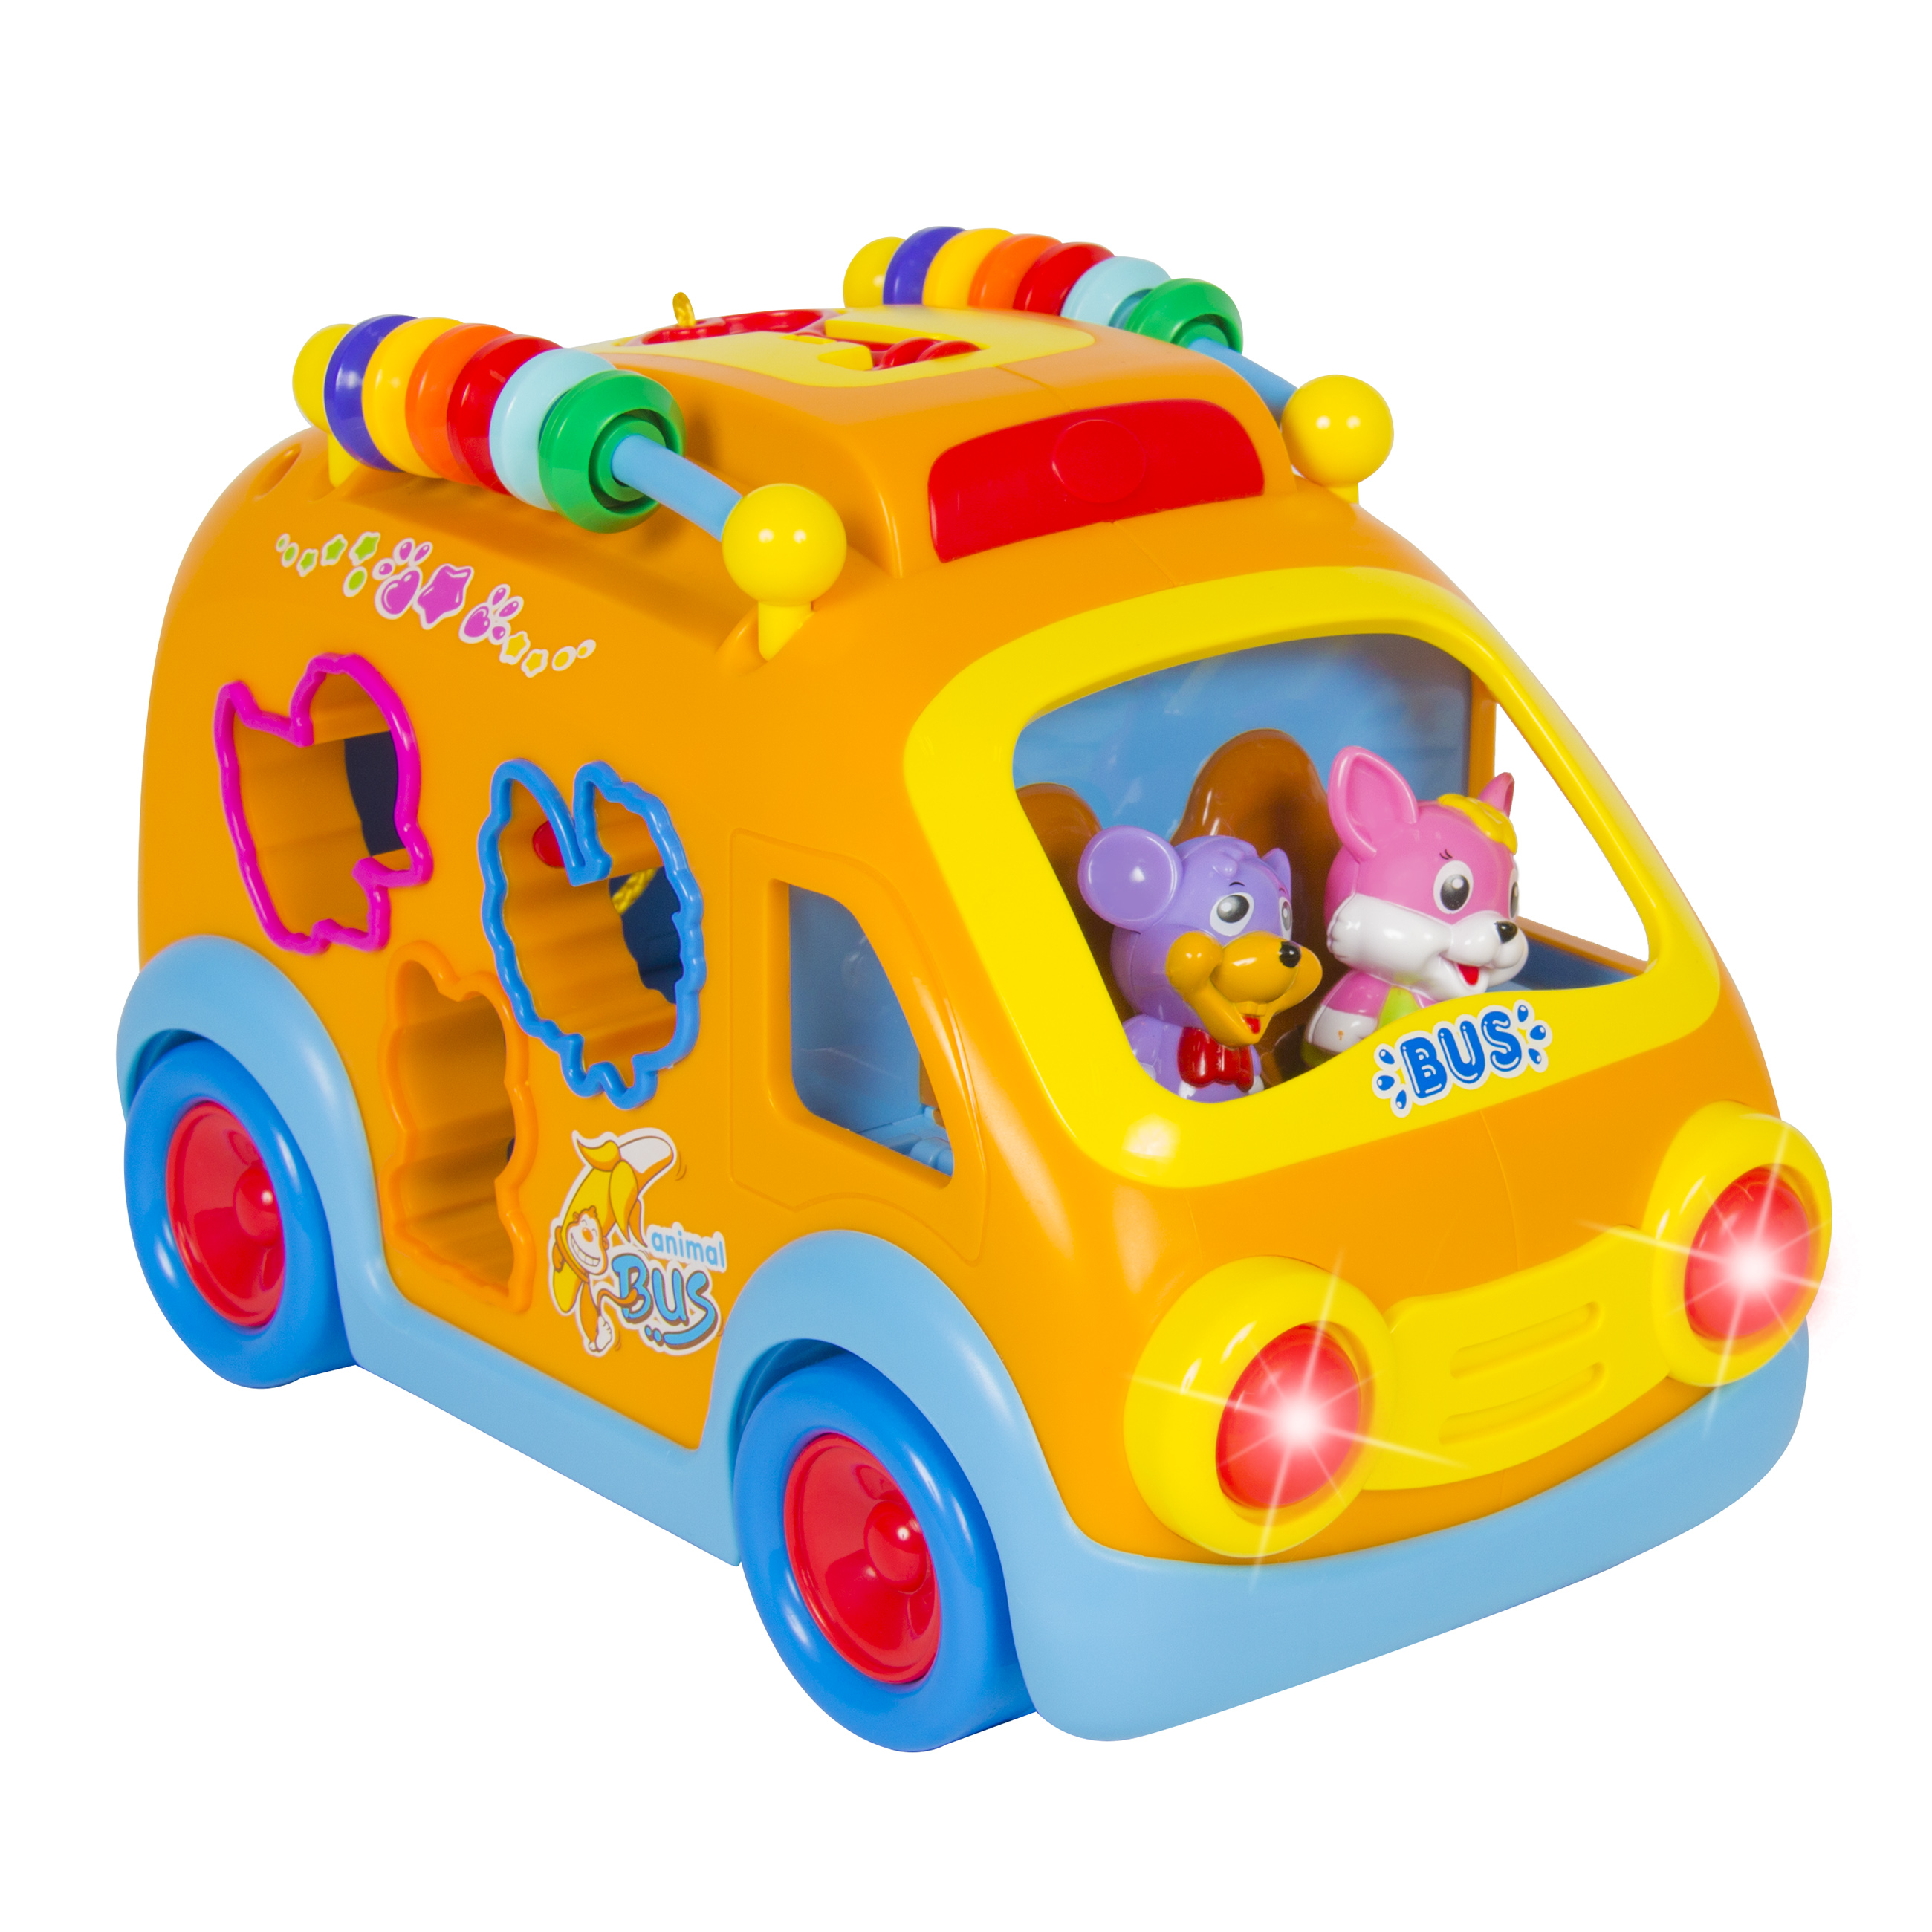 Toy Happy Educational School Bus Bump'n'Go, Music, Animal Sounds, Lights, Games